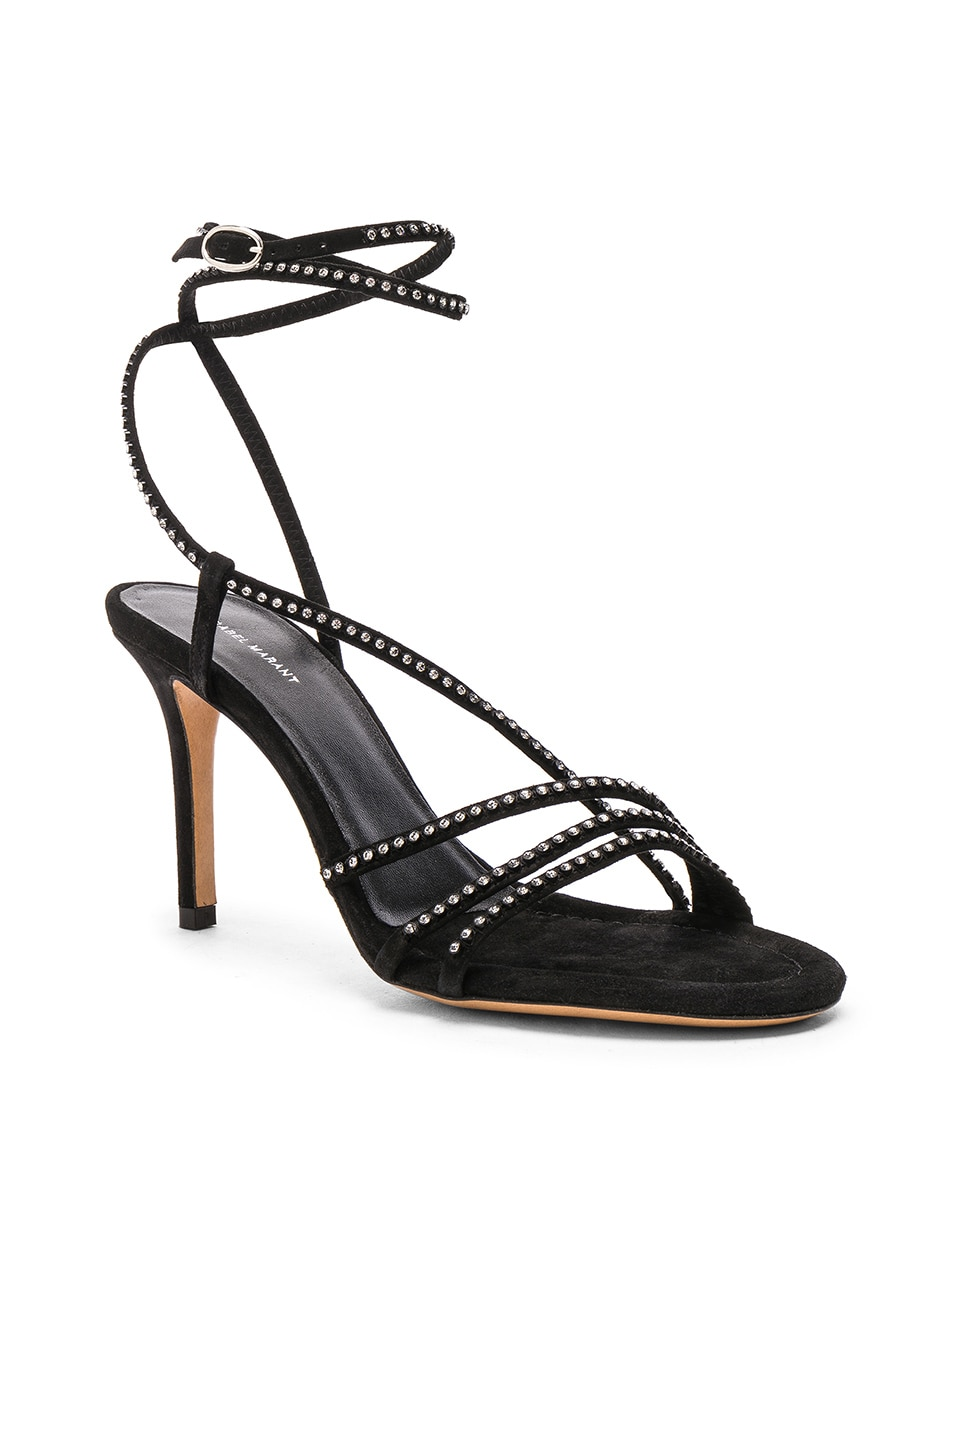 Image 2 of Isabel Marant Suede Amspee Sandals in Black